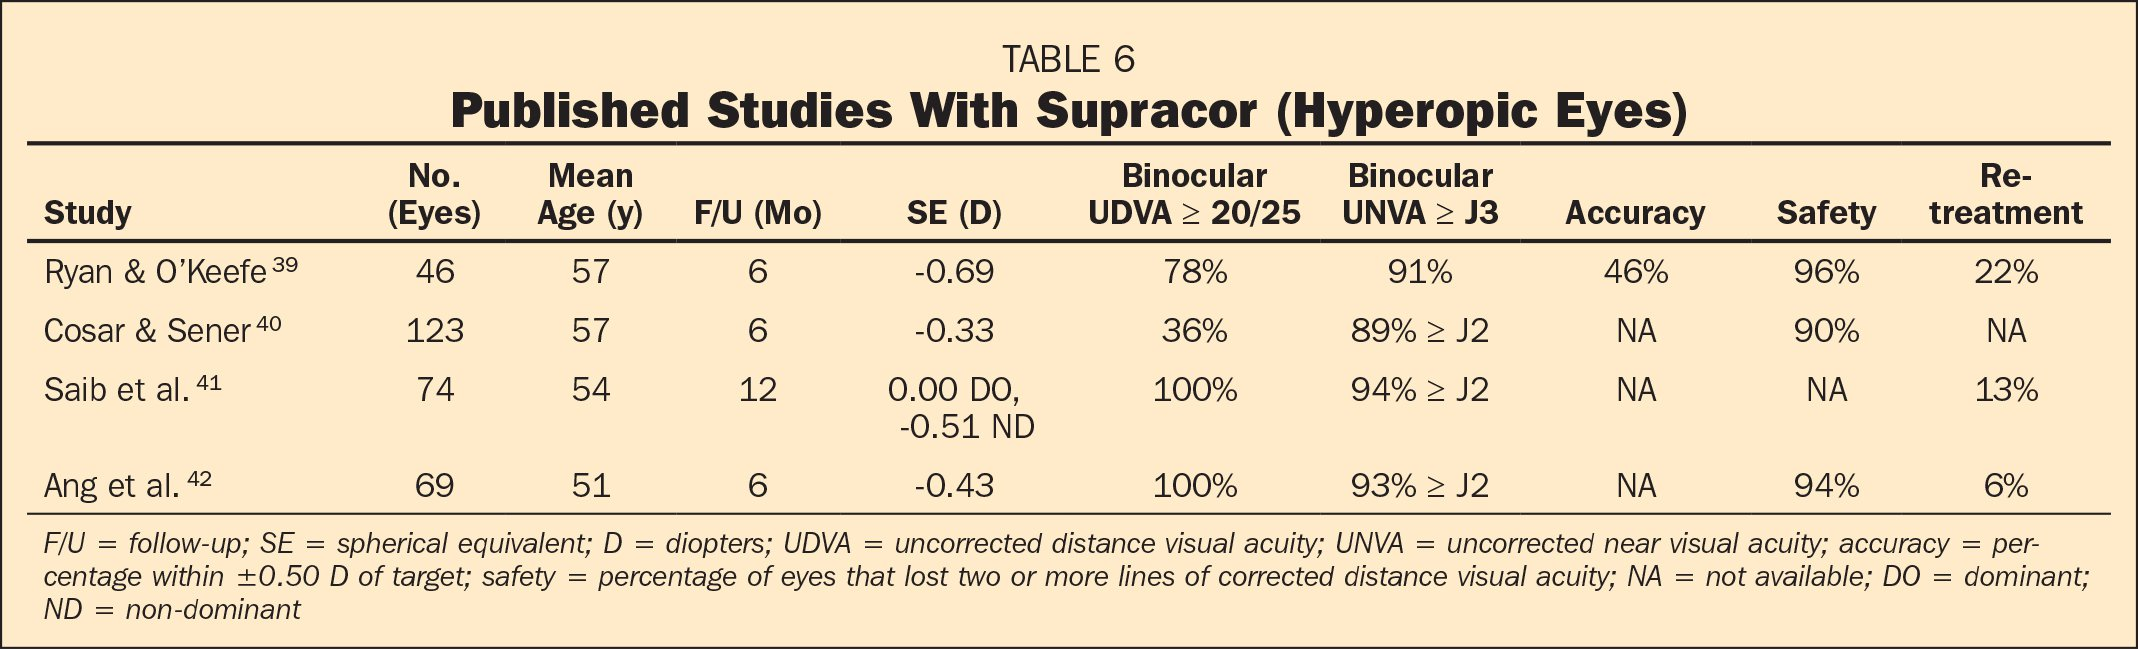 Published Studies With Supracor (Hyperopic Eyes)